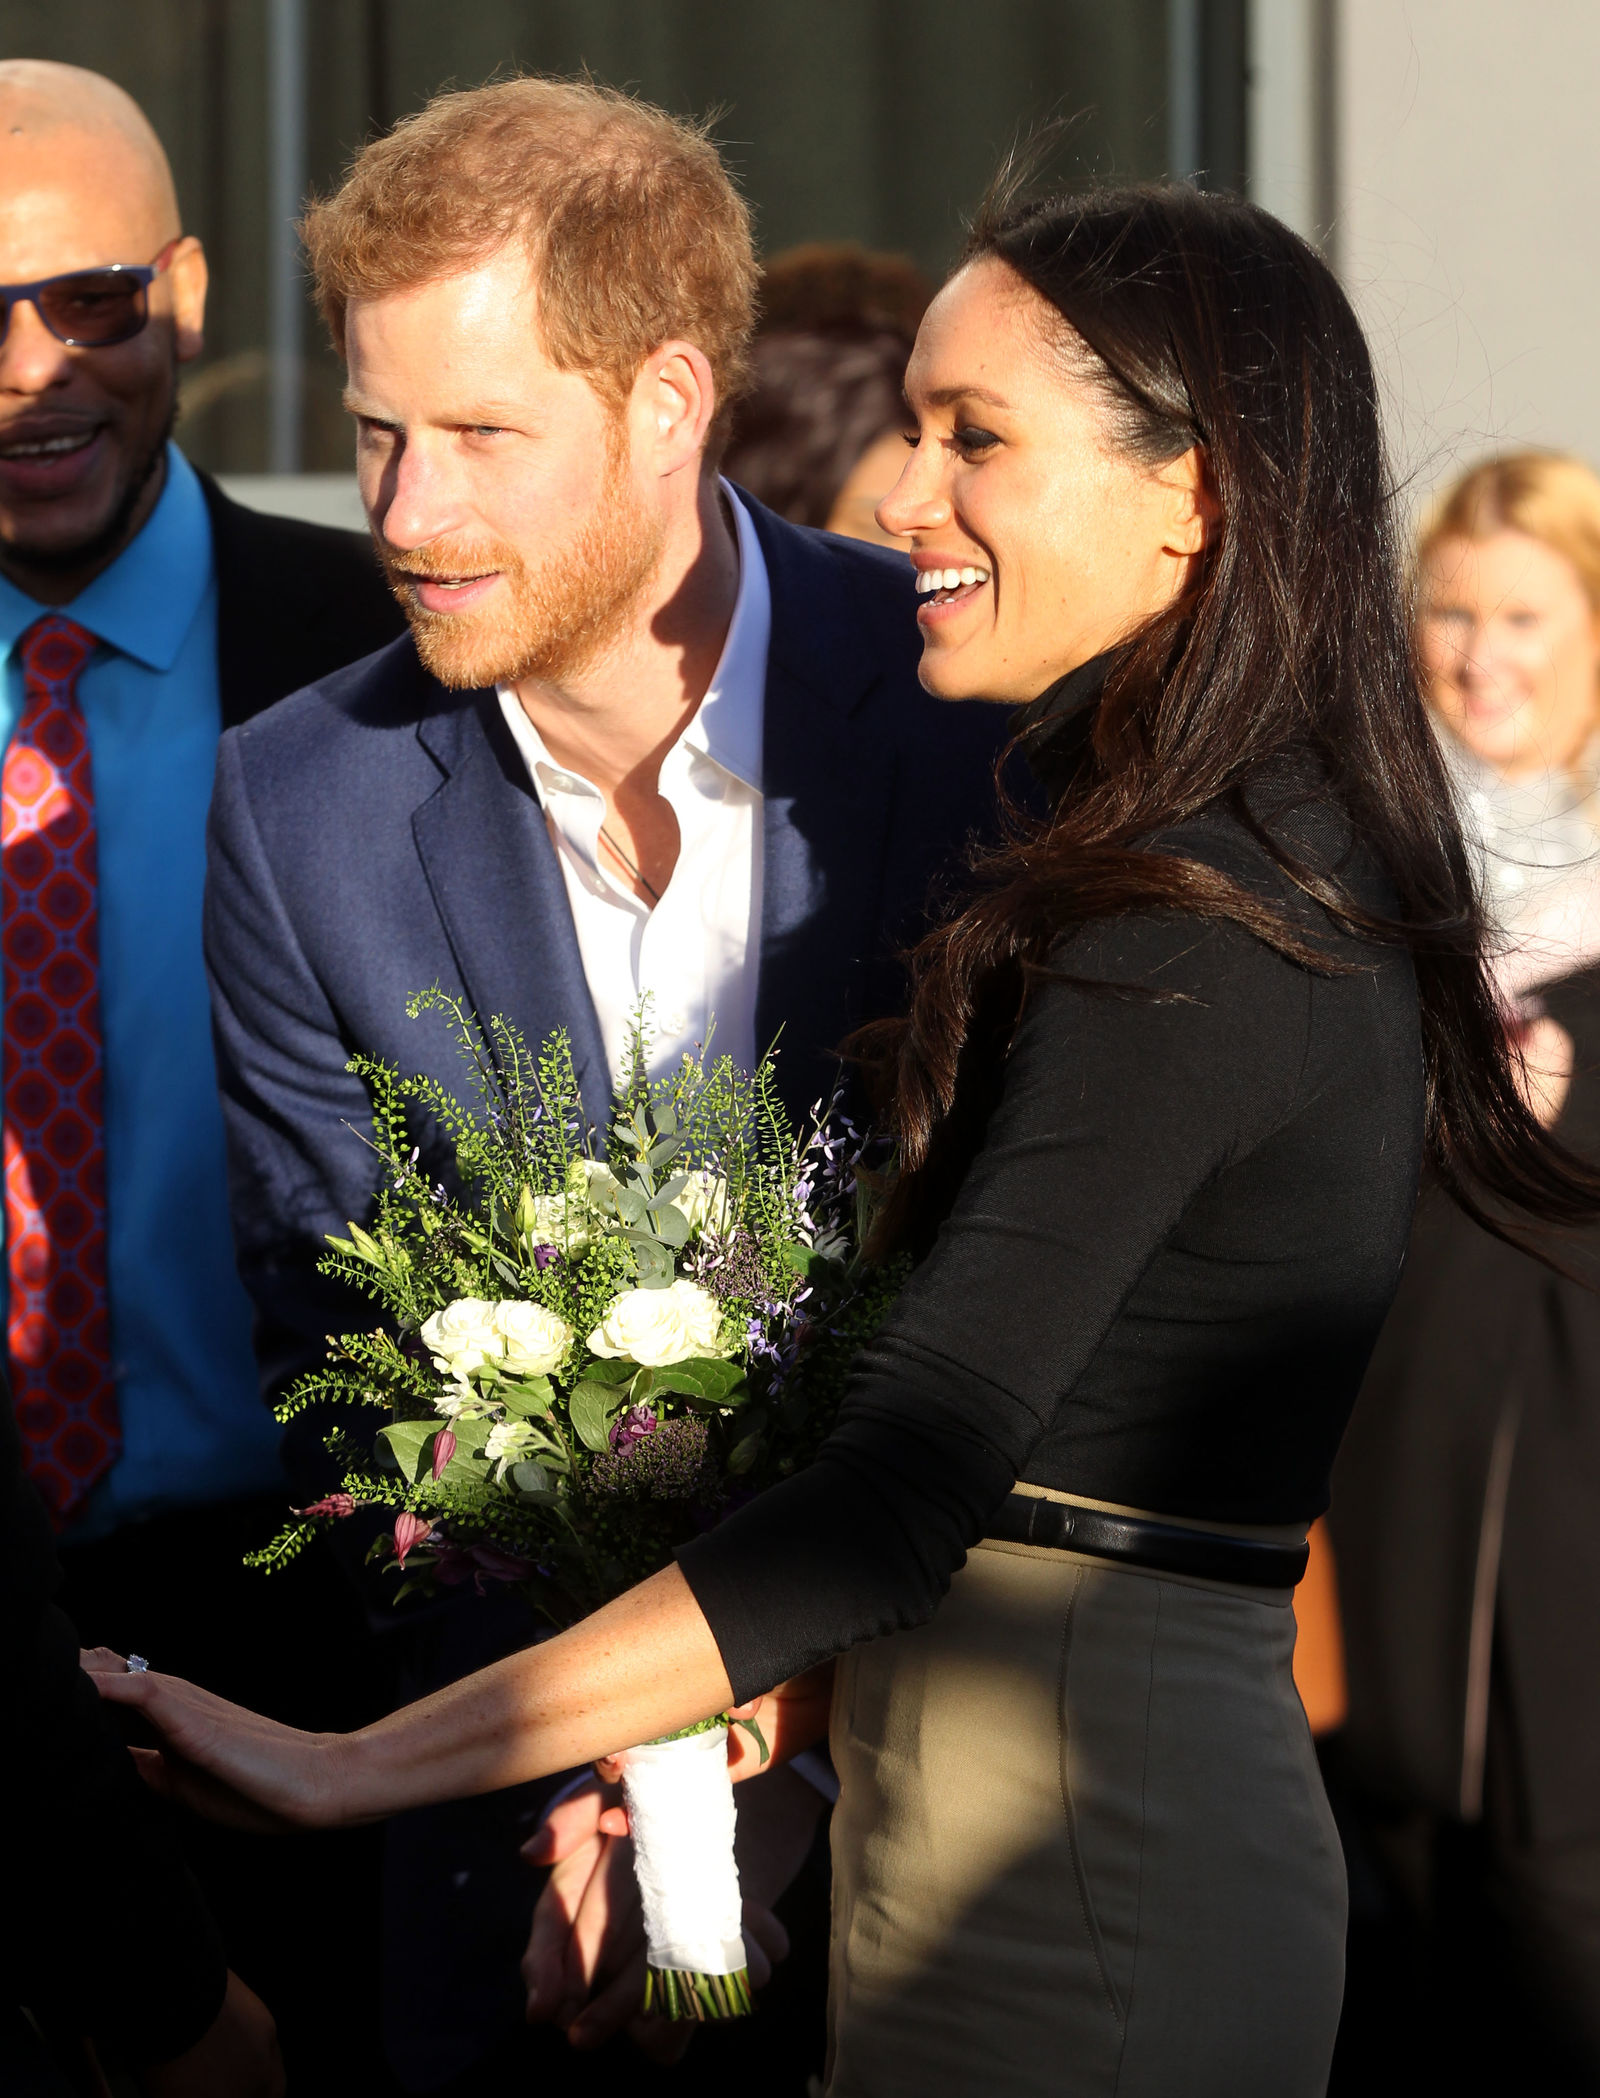 Prince Harry and Meghan Markle visit Nottingham Academy in support of the Full Effect programme, which supports children in the St Ann's area through a combination of early intervention, mentorship and training, to prevent them becoming involved in youth violence. Featuring: Prince Harry and Meghan Markle Where: London, United Kingdom When: 01 Dec 2017 Credit: Danny Martindale/WENN.com